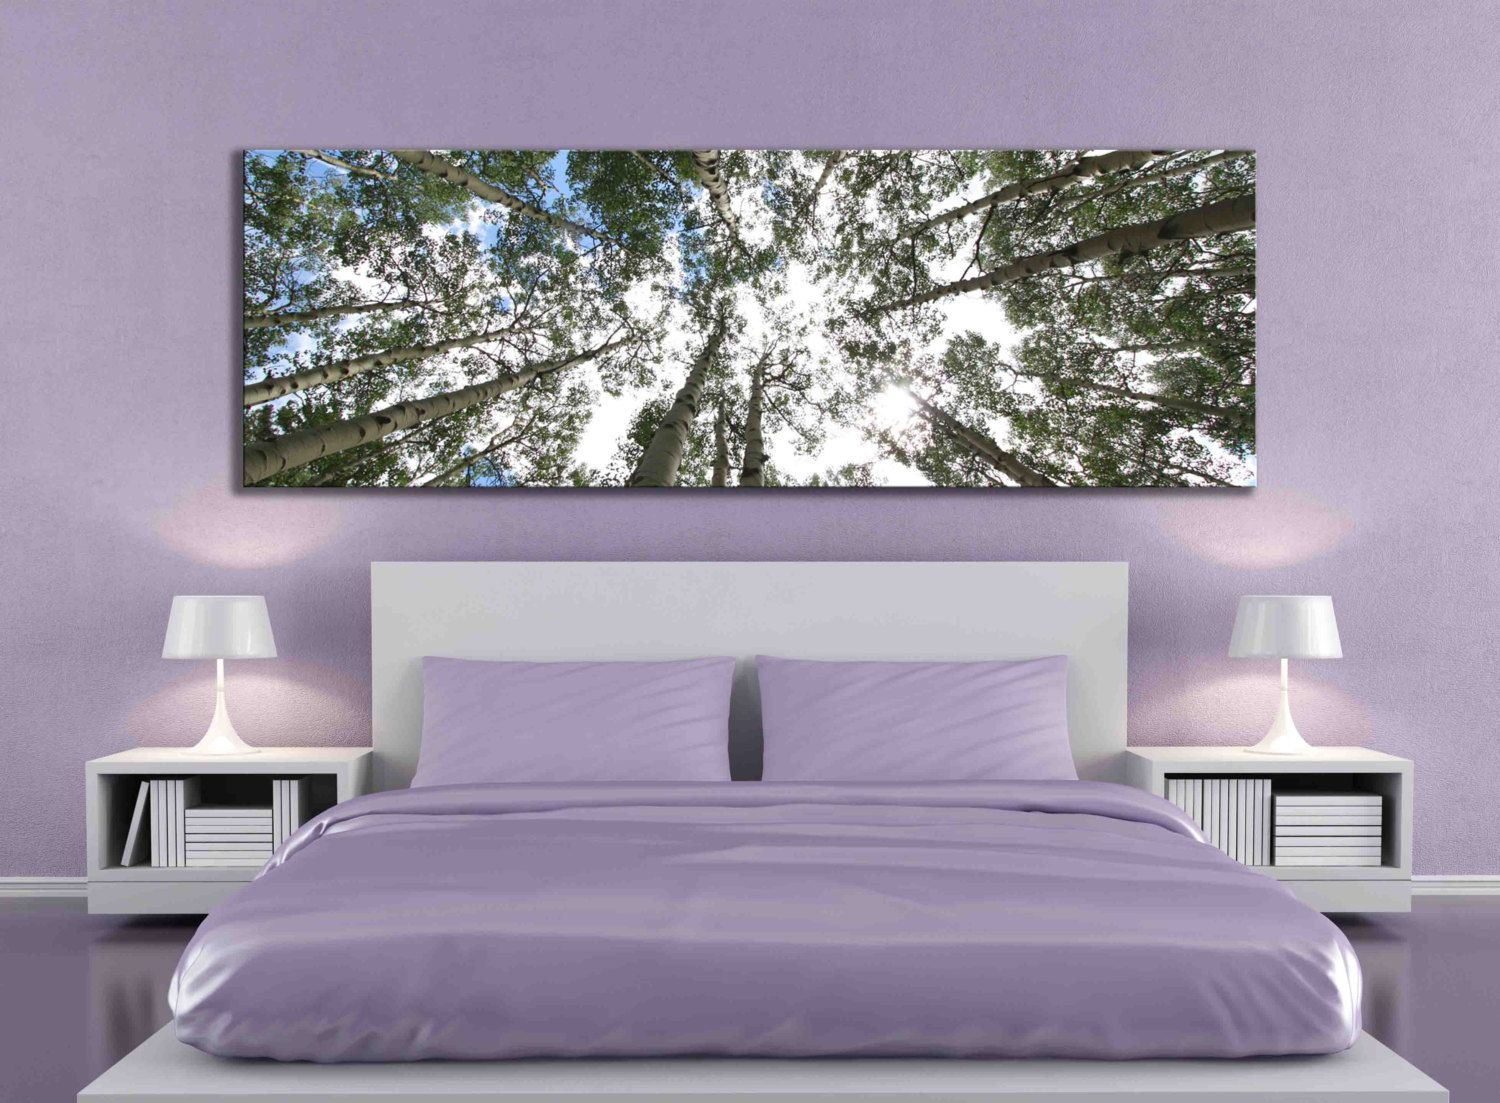 big aspen tree photograph large panoramic canvas print nature home decor over the bed bedroom. Black Bedroom Furniture Sets. Home Design Ideas